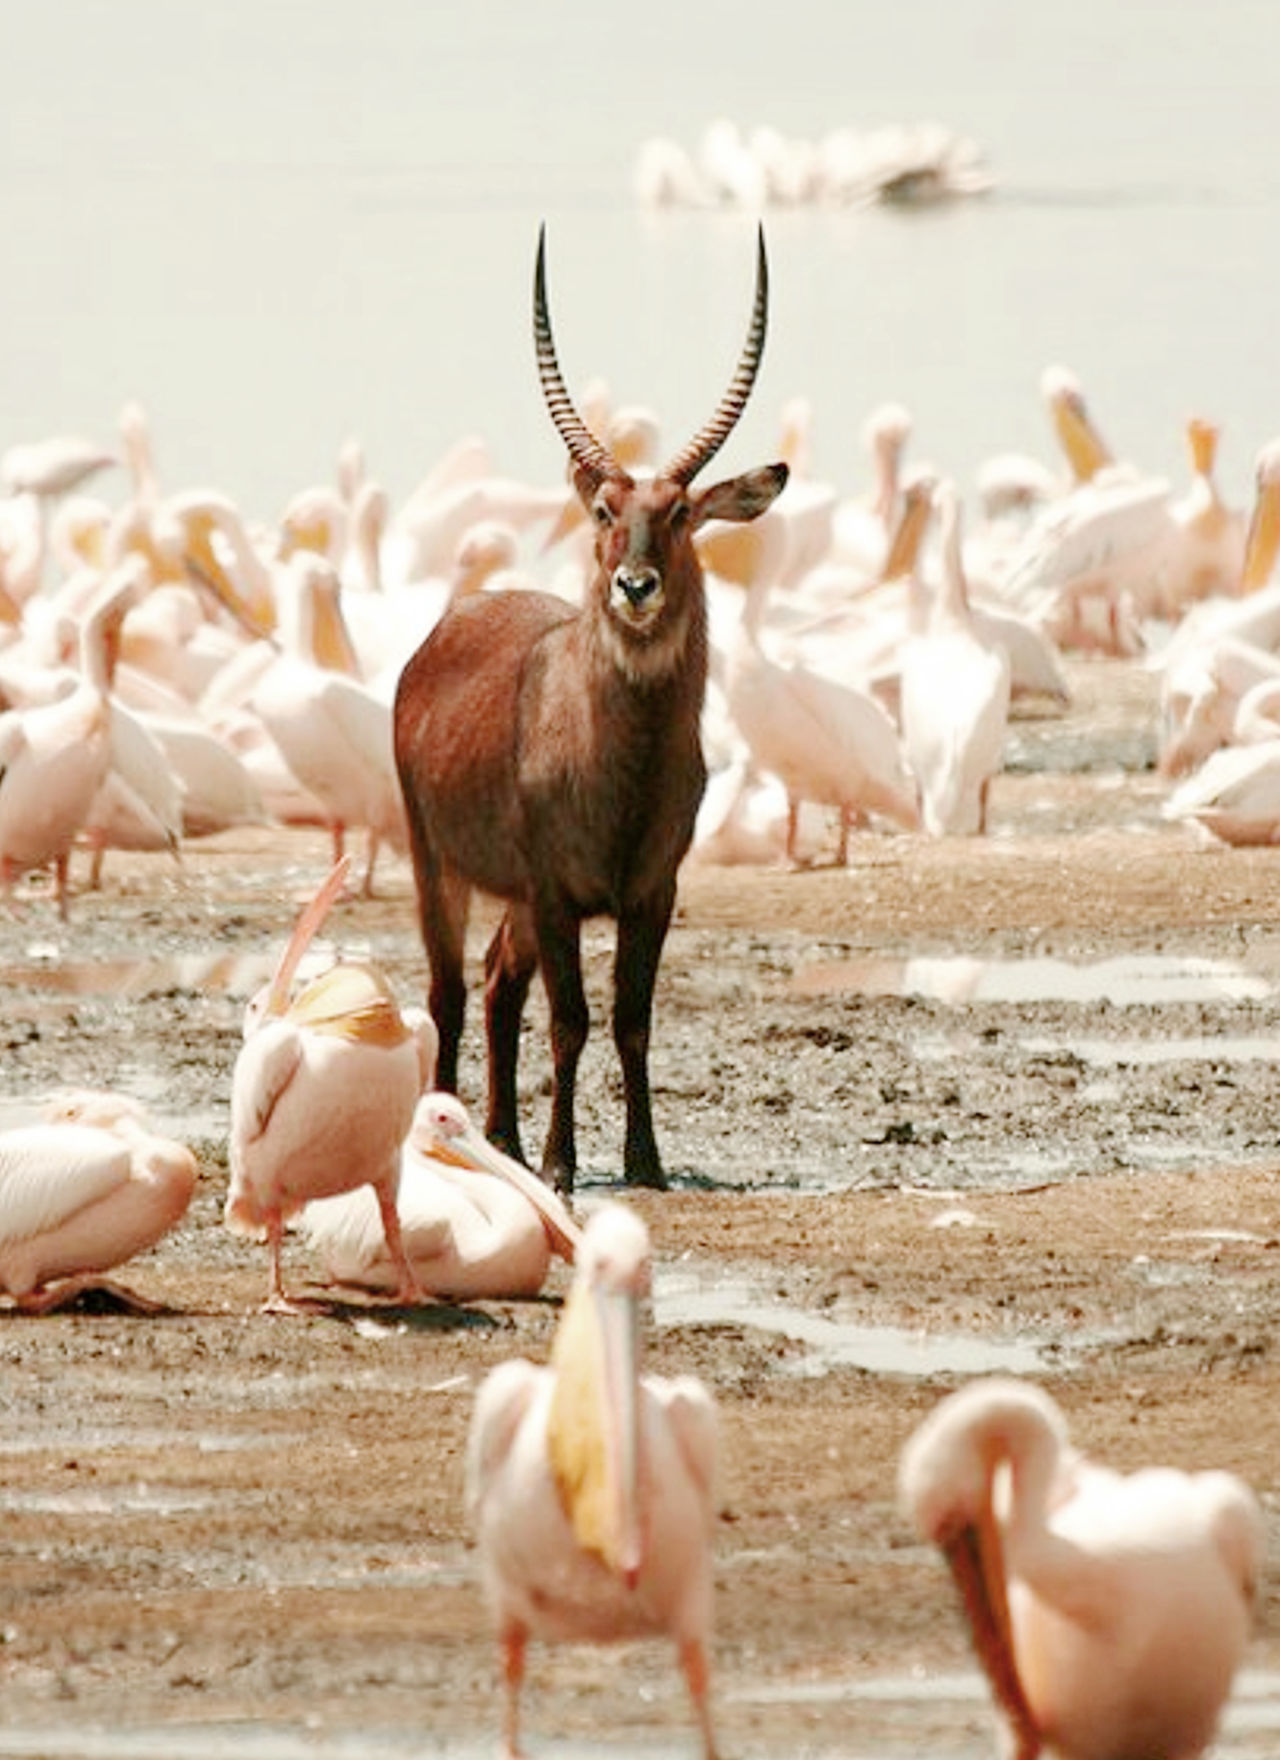 Animal Themes Animal Wildlife Animals In The Wild Antler Bird Day Flamingo Flying Large Group Of Animals Mammal Nature No People Outdoors Water